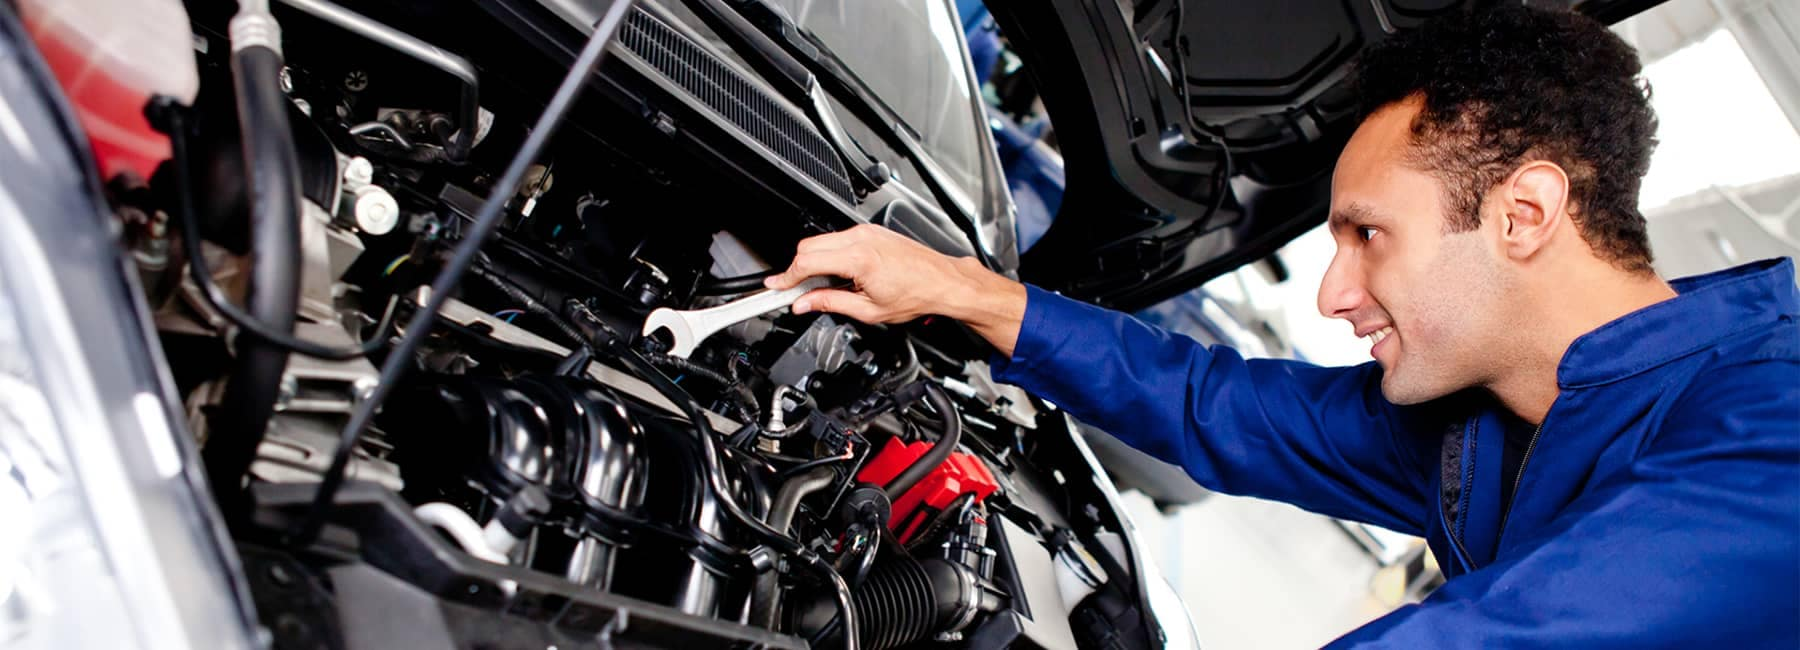 Mechanic Looking at Car Engine